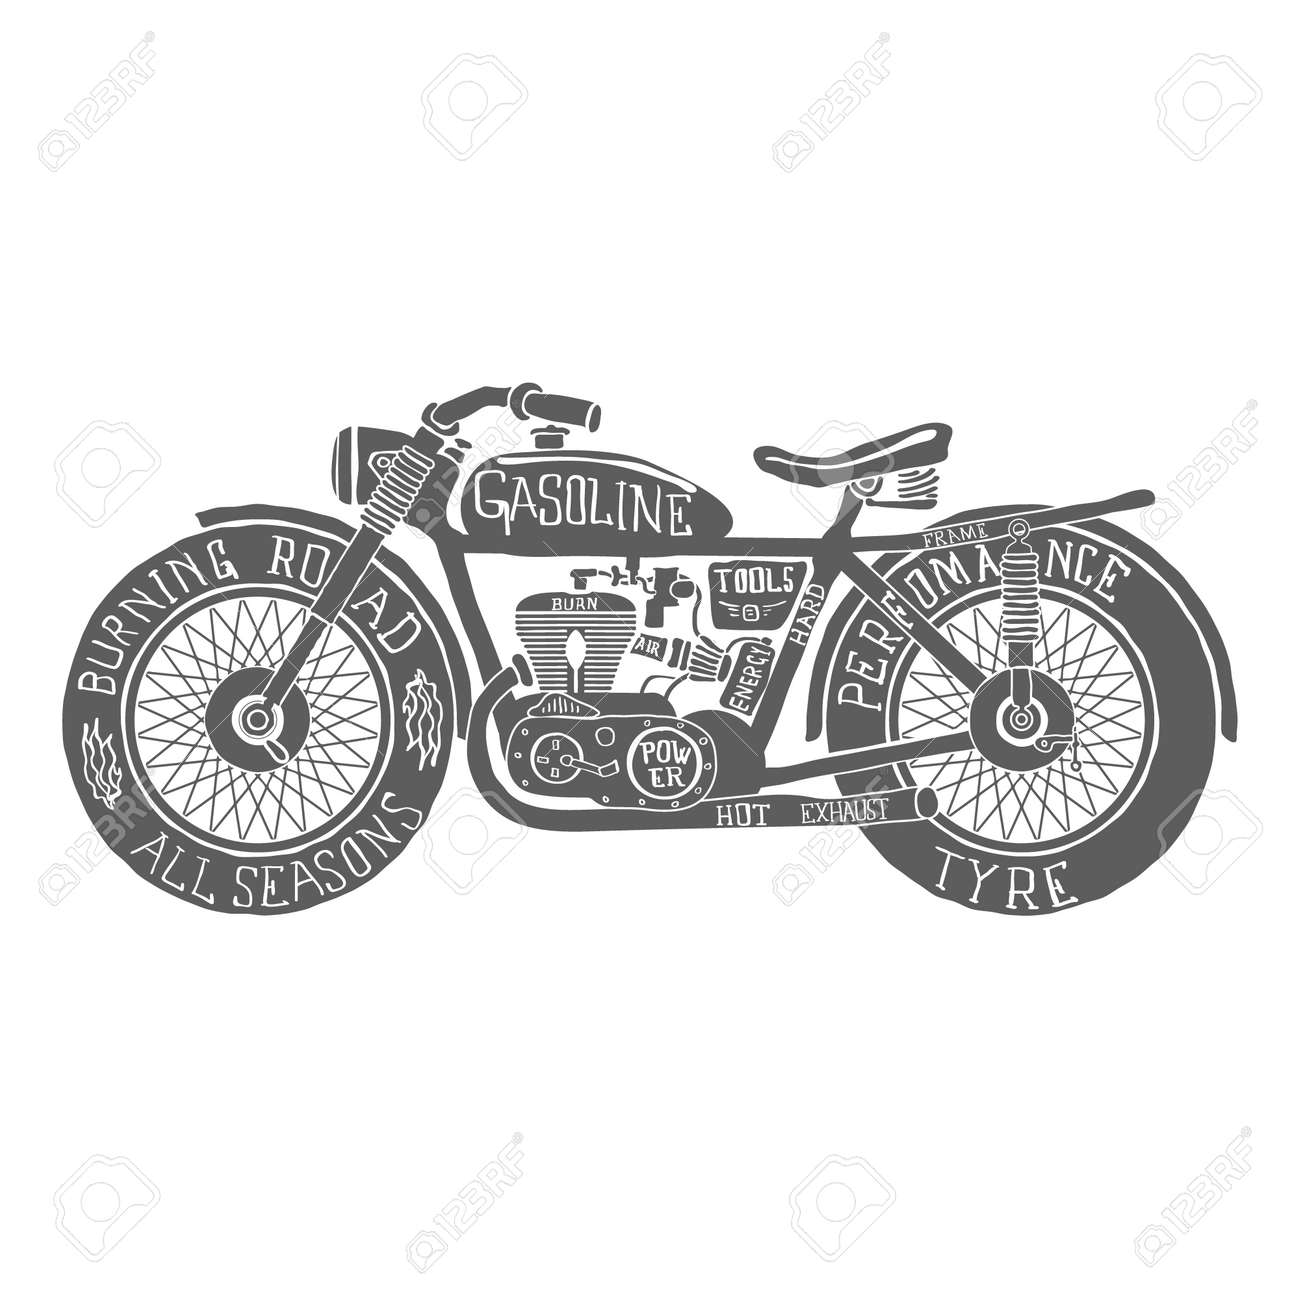 Vintage Motorcycle Clipart Black And White   Reviewmotors.co